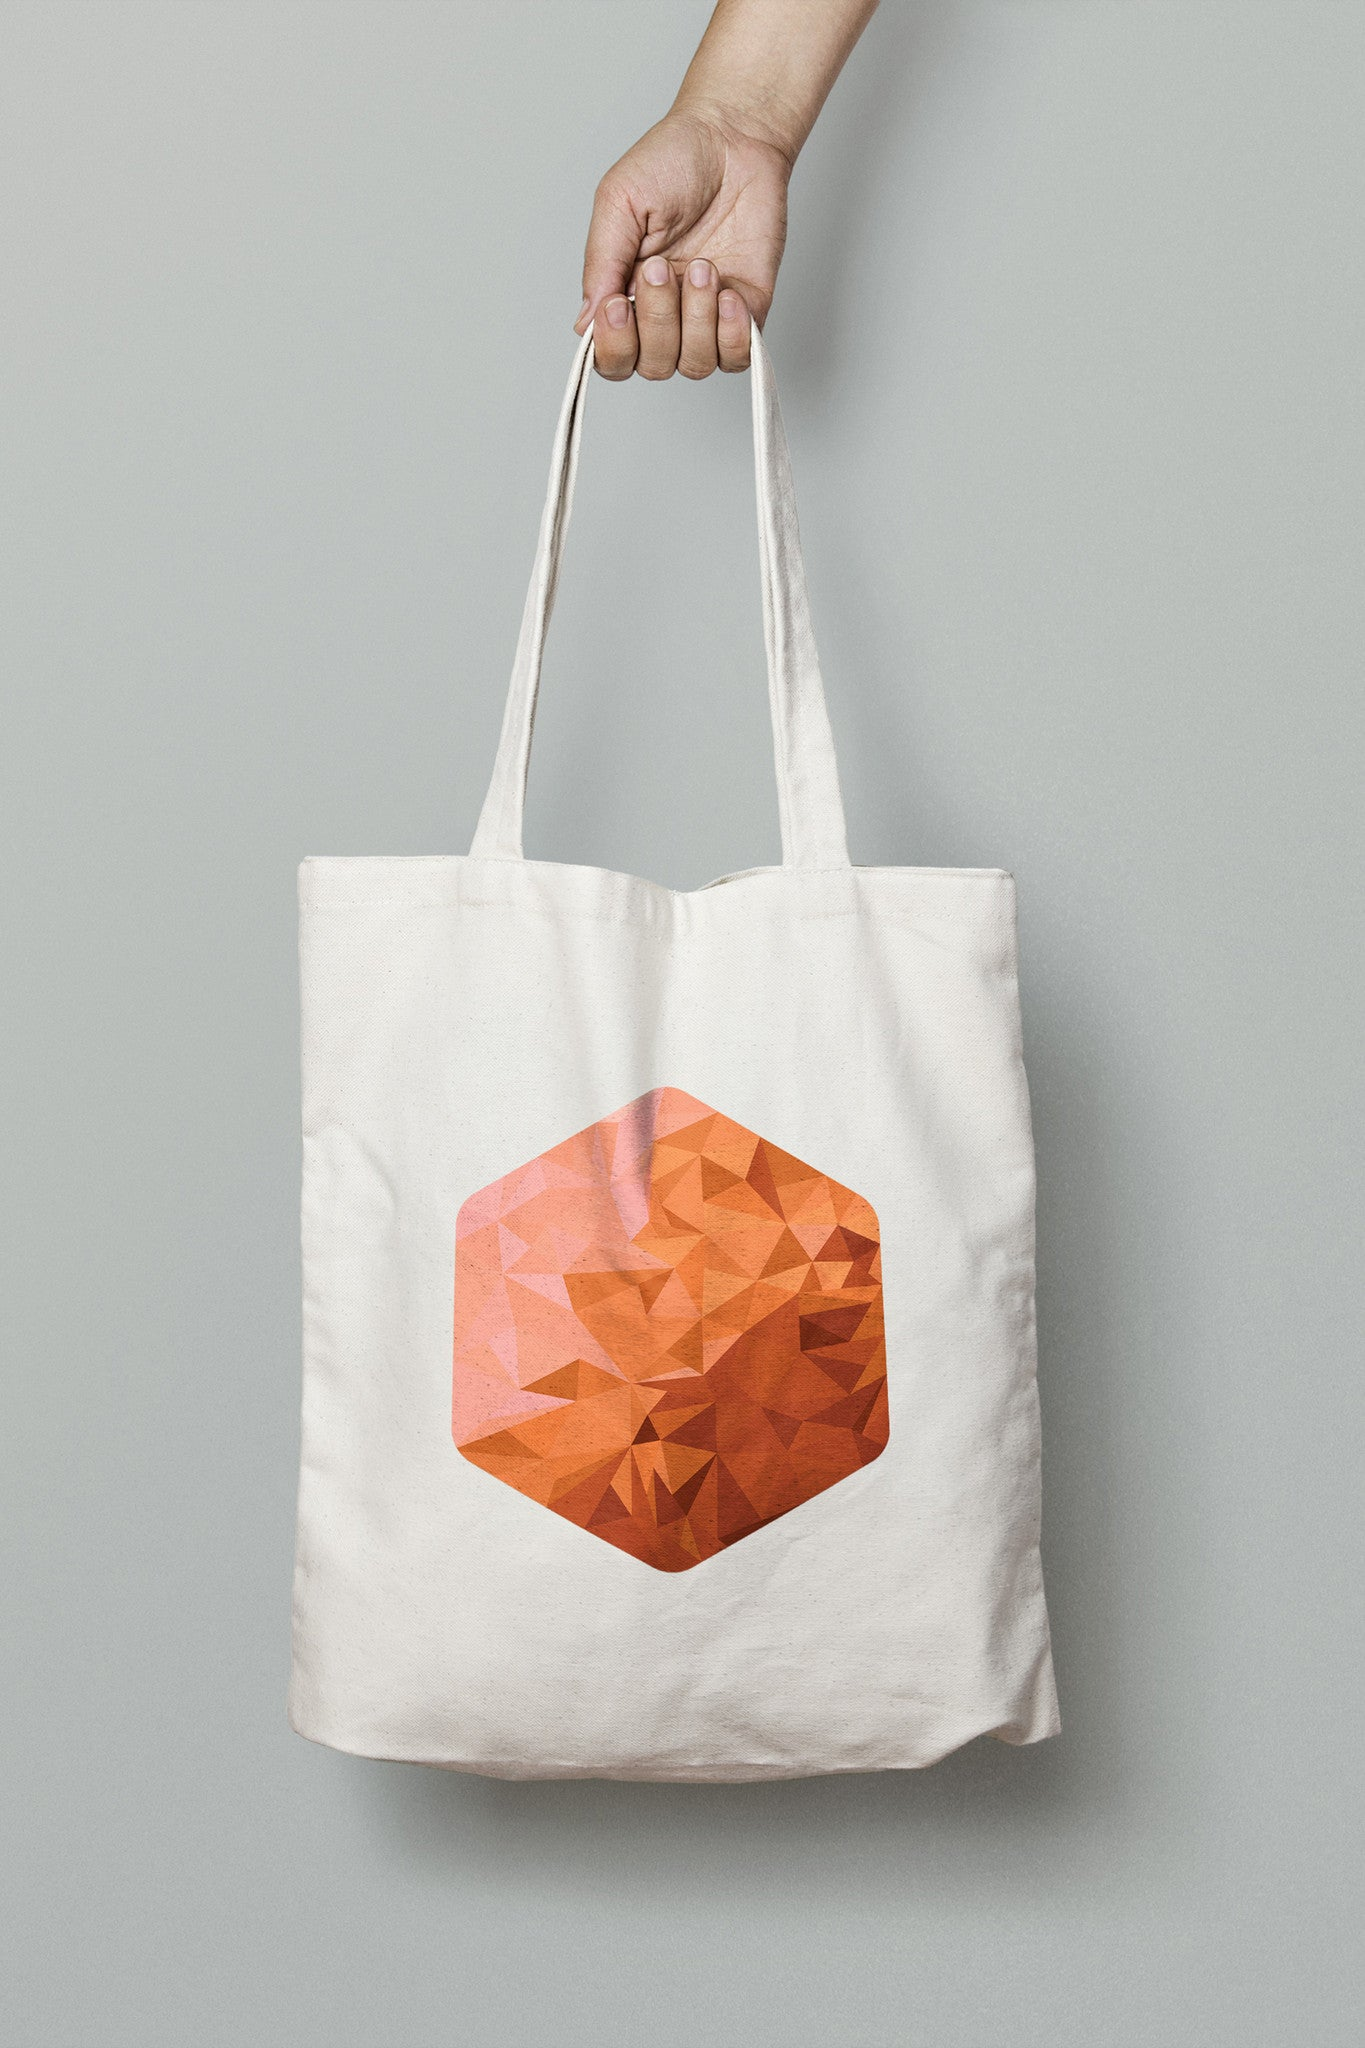 Dusk Tote by emerybloom